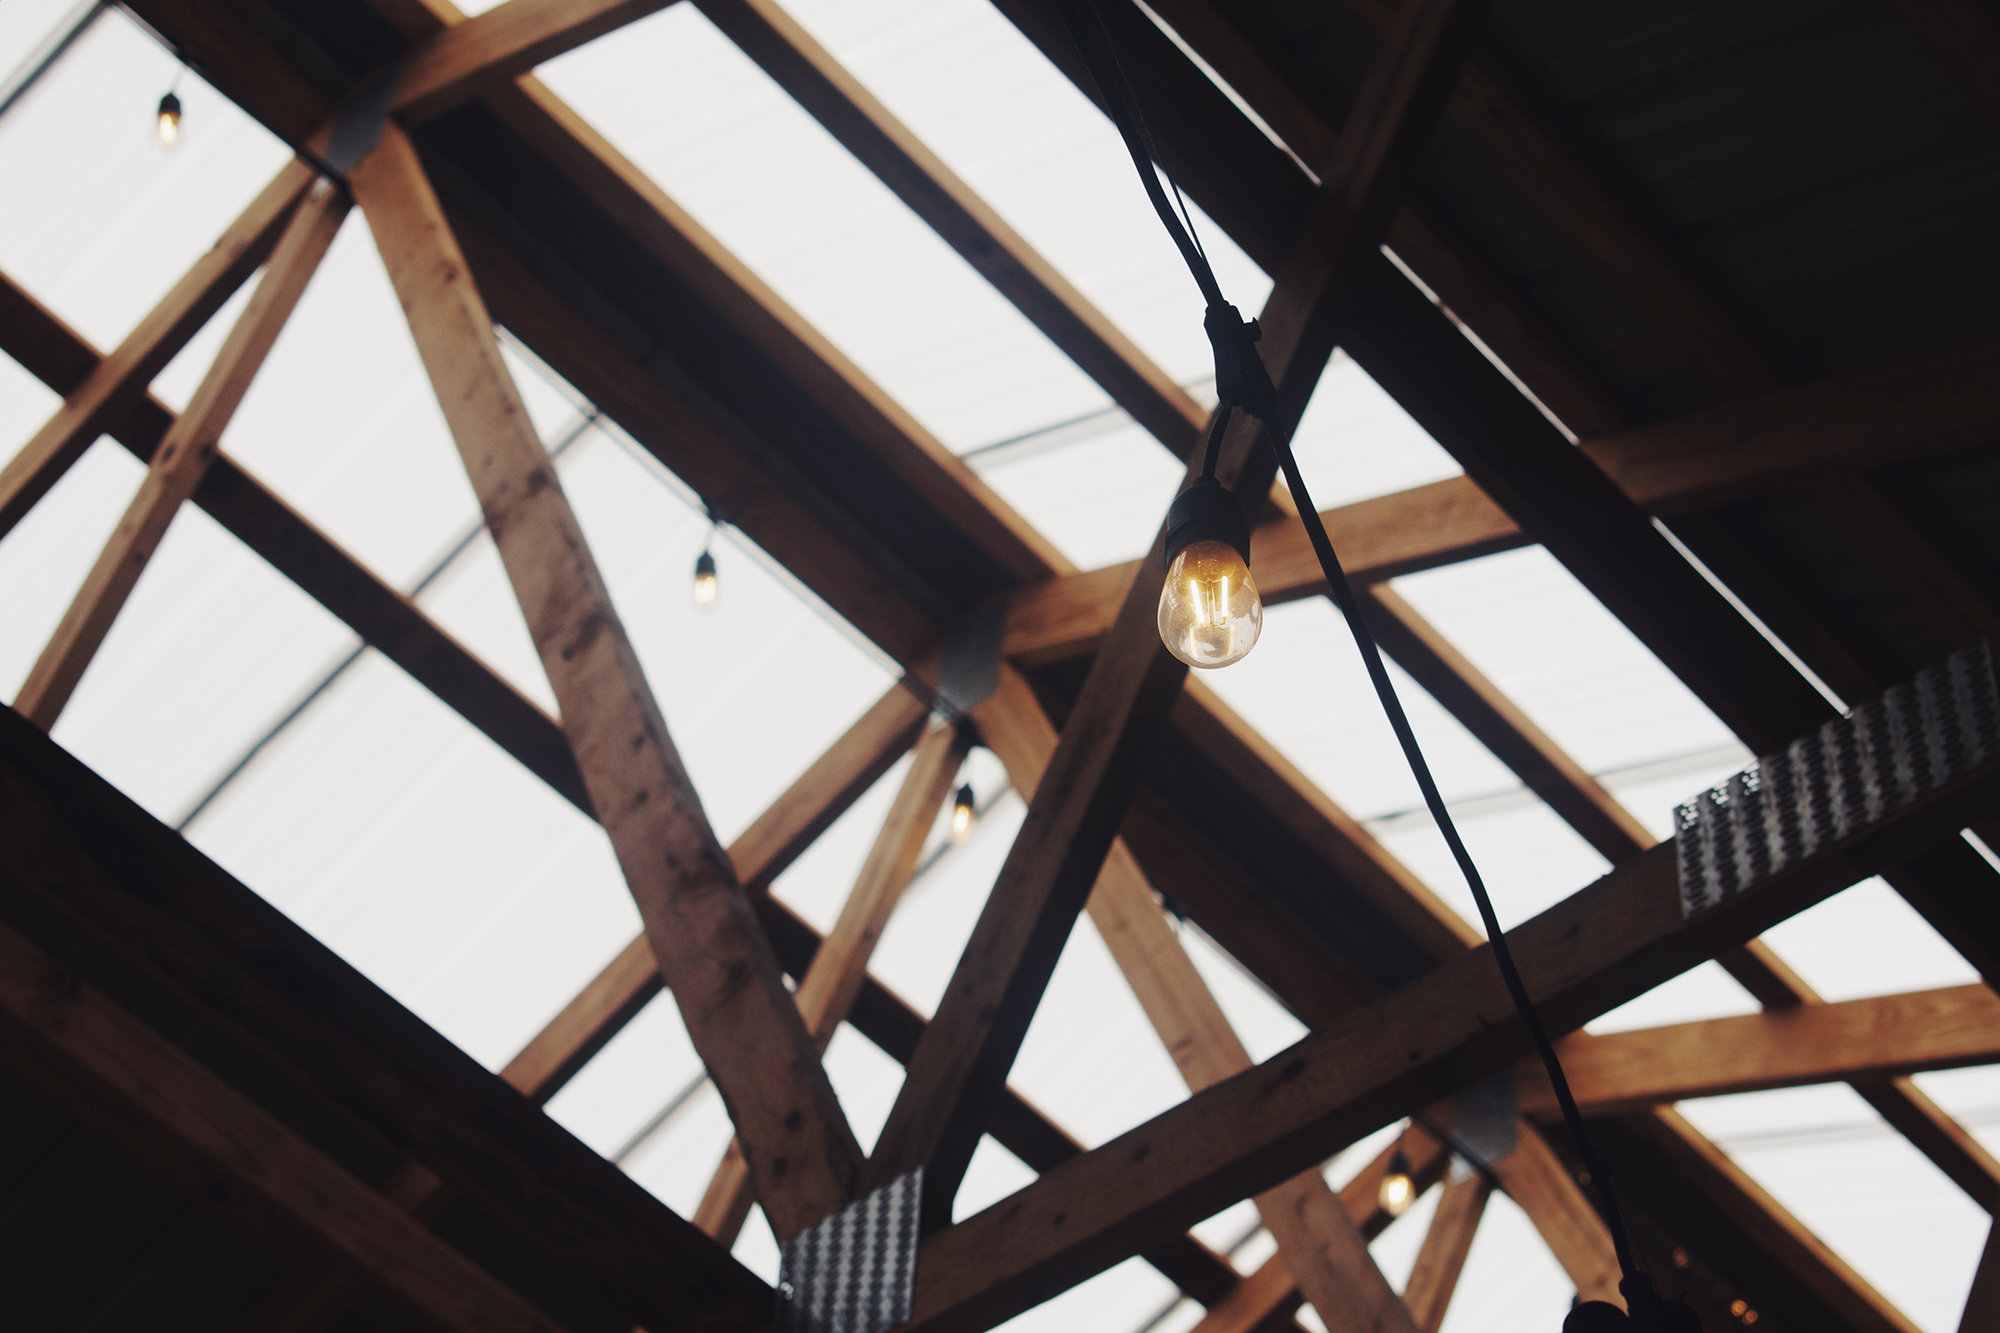 Pine beam roof struts with pitched glass roof